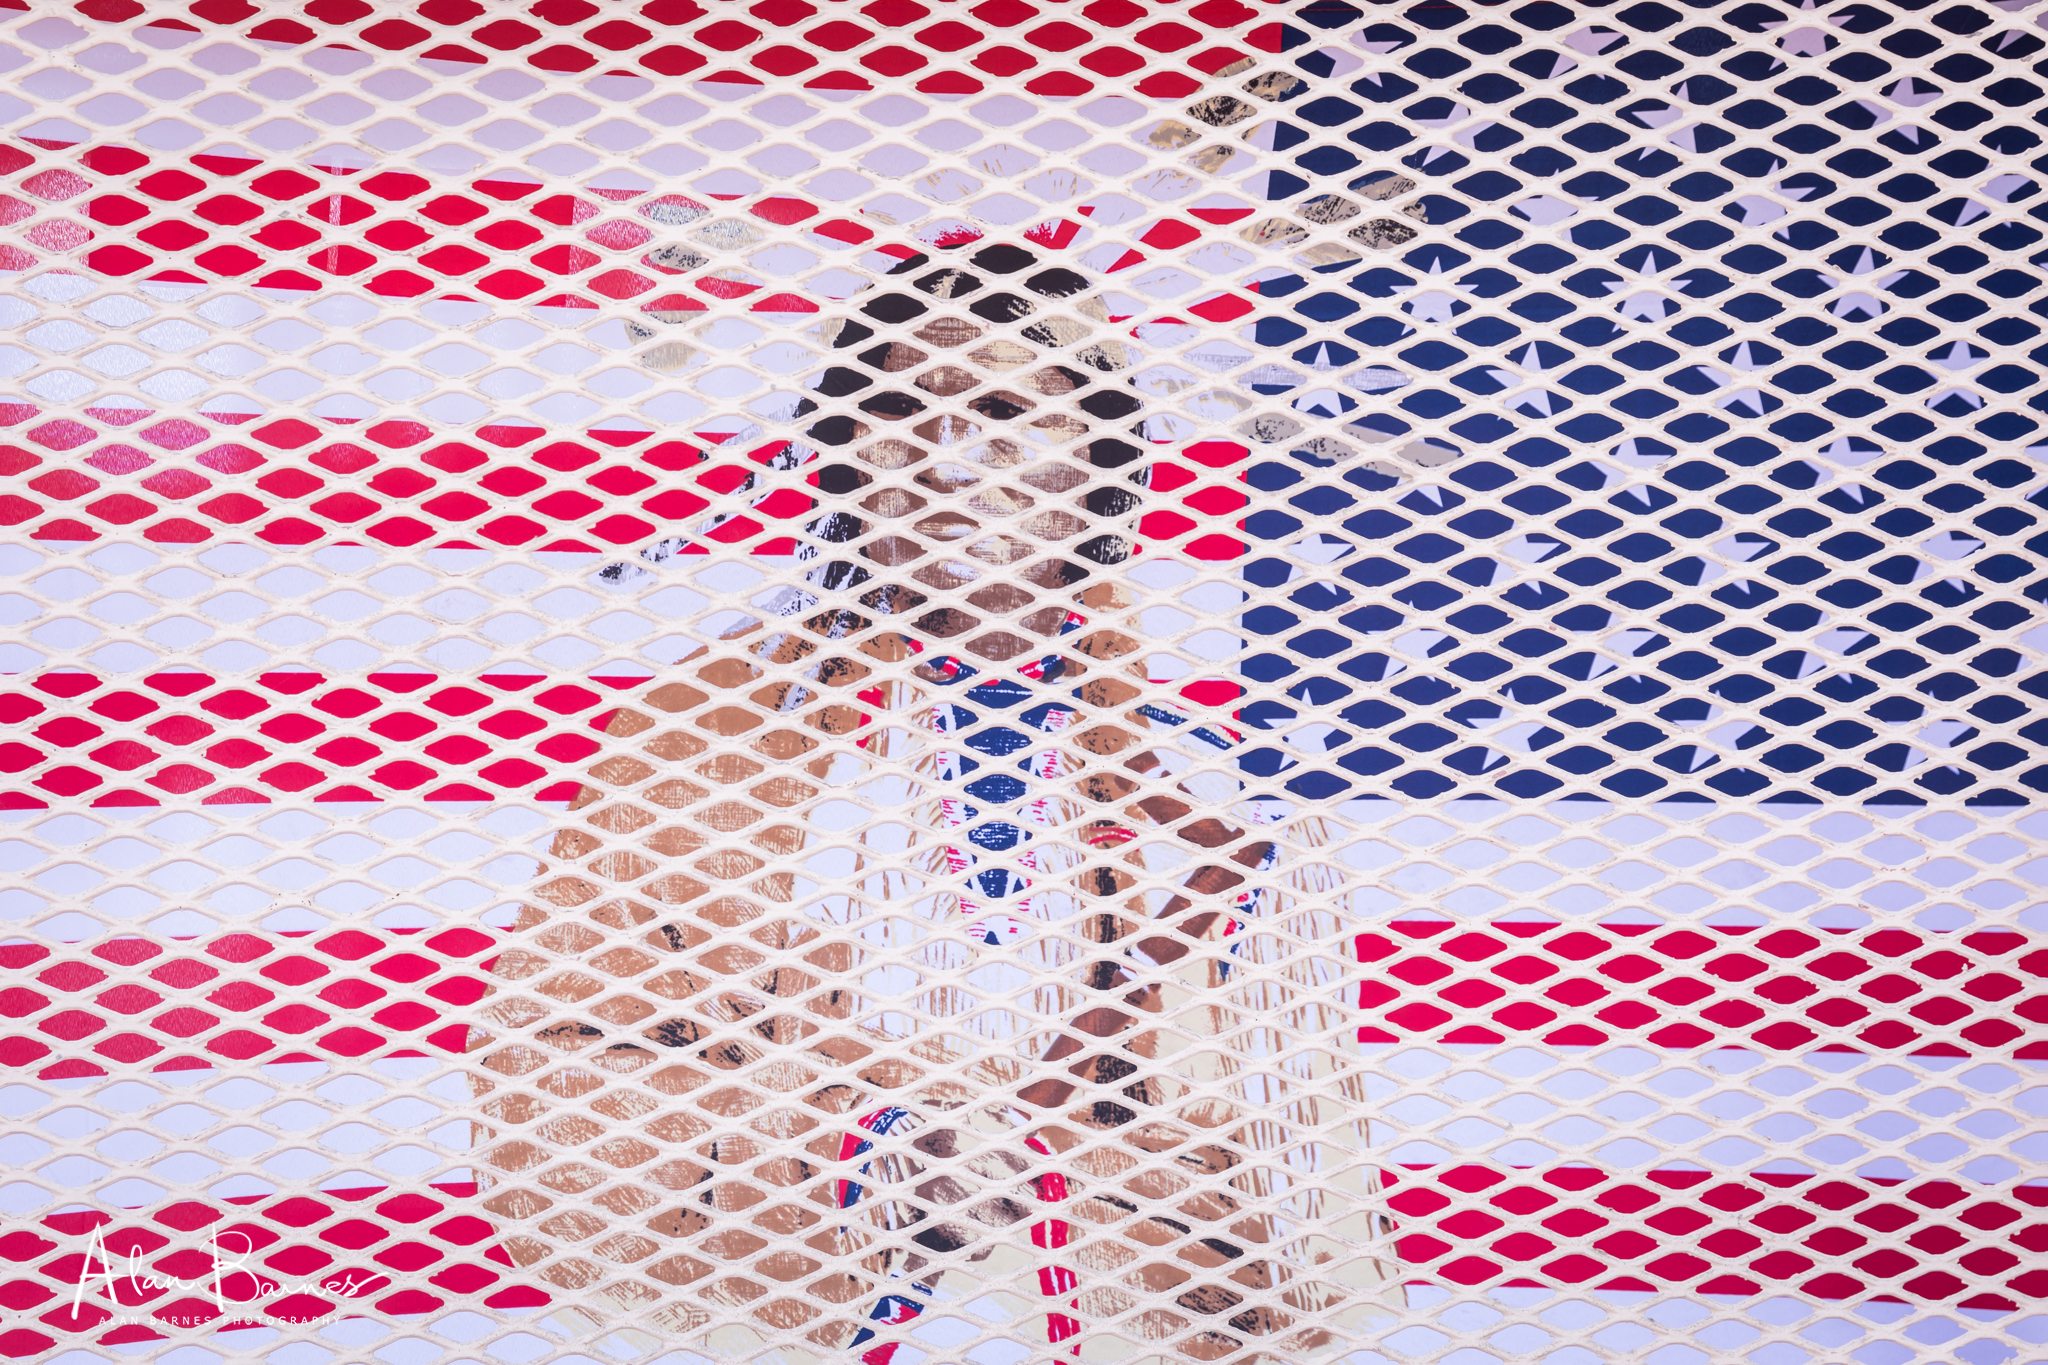 Walking around the outside of the building I saw this flag behind some window grids and thought it was a very symbolic image of the Native American status.